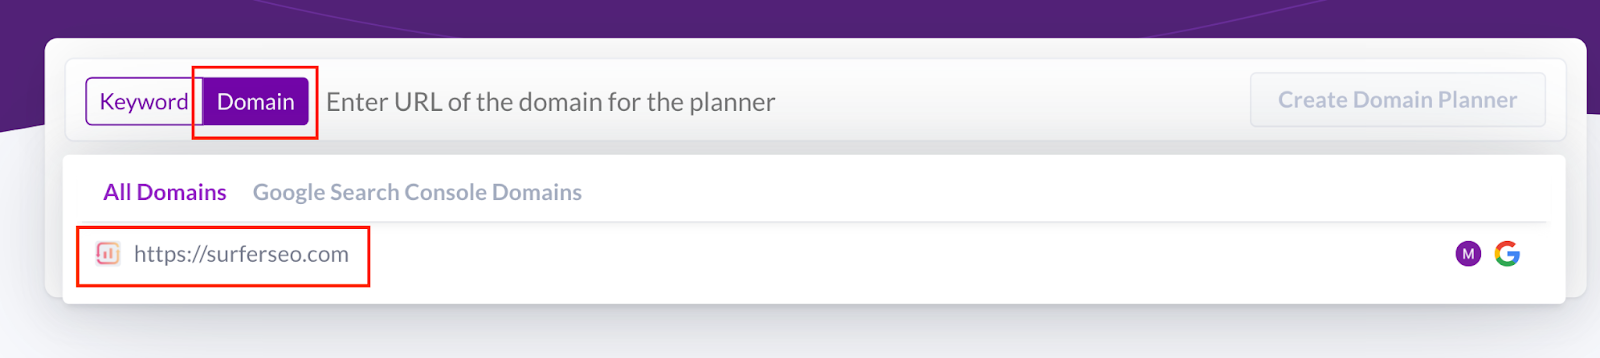 Picking domain and country in Surfer Content Planner